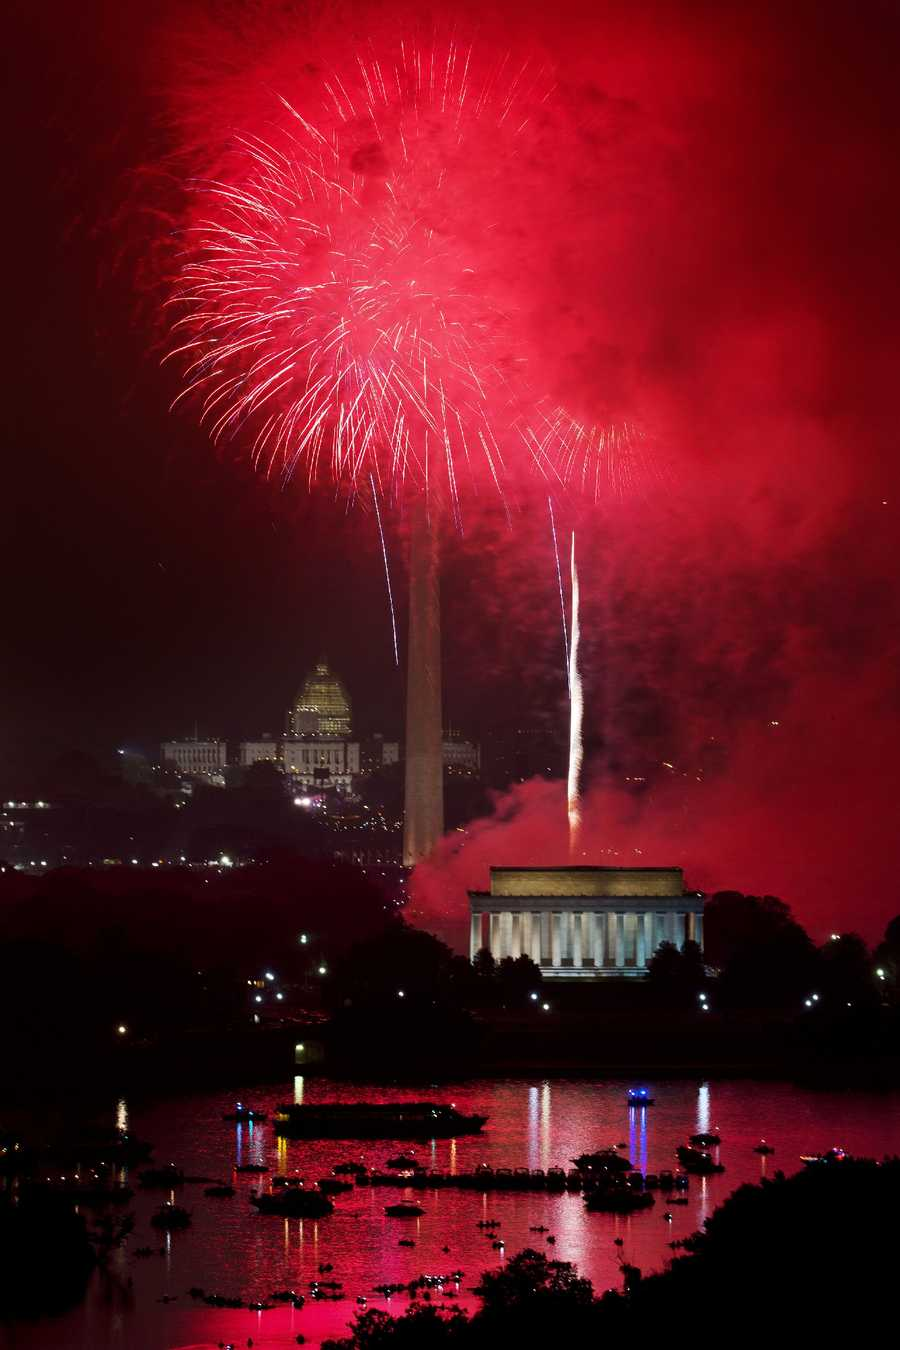 Red fireworks are caused by strontium carbonate.